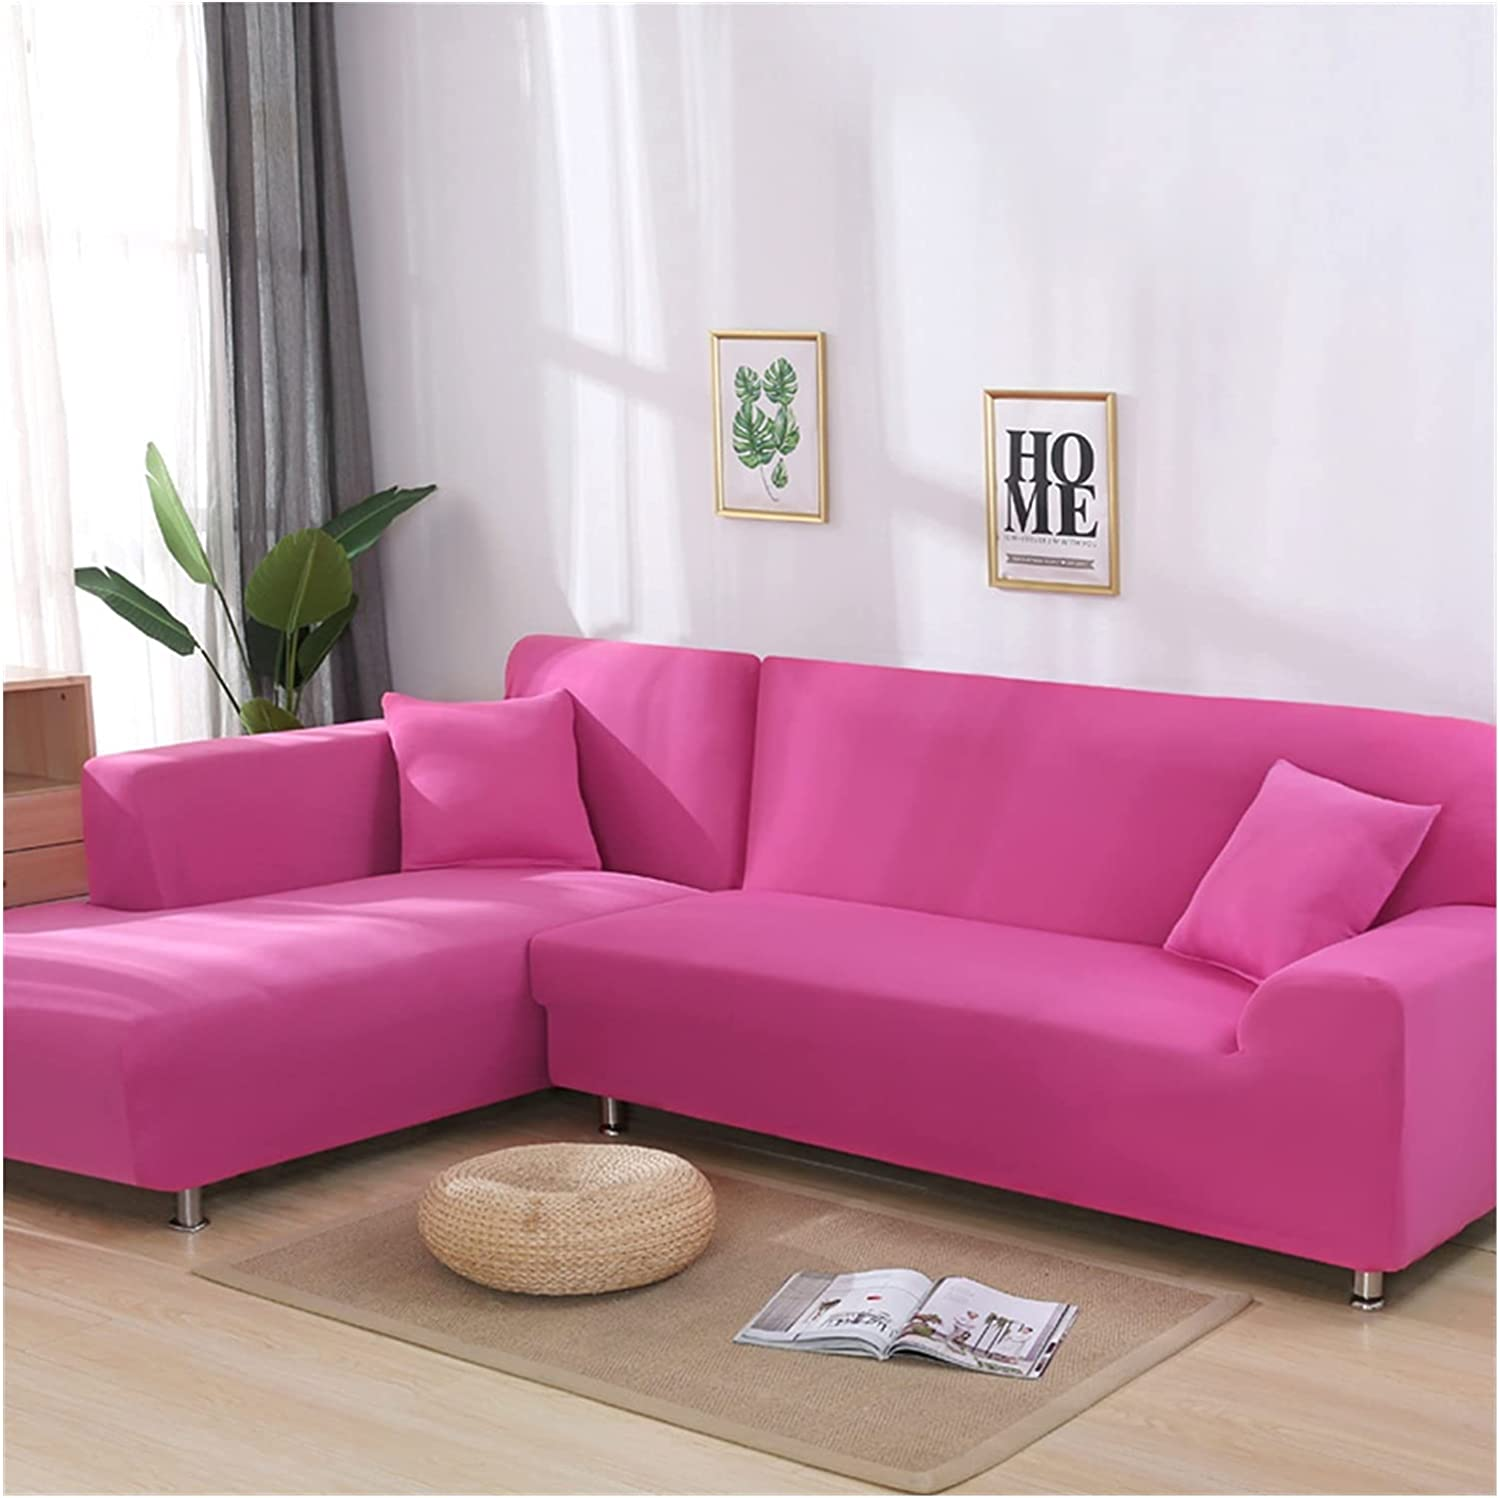 High quality ZHBO Solid Color Elastic slipcovers To Cover Sofa Couch Free shipping on posting reviews Stretch